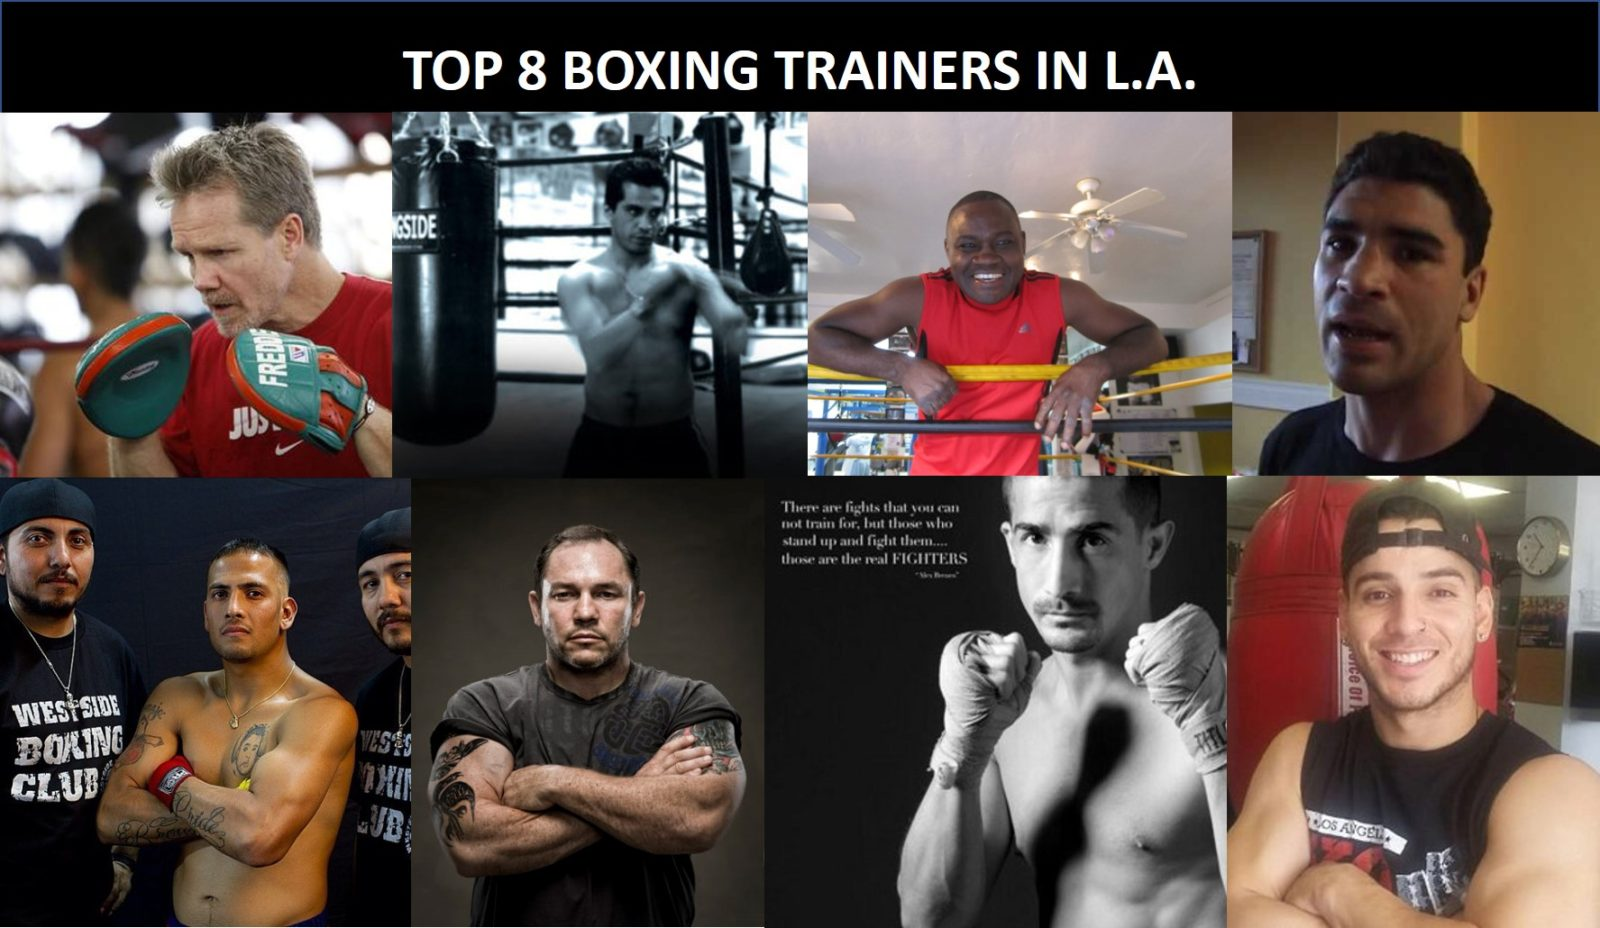 Best Boxing Trainers In Los Angeles - Top 8